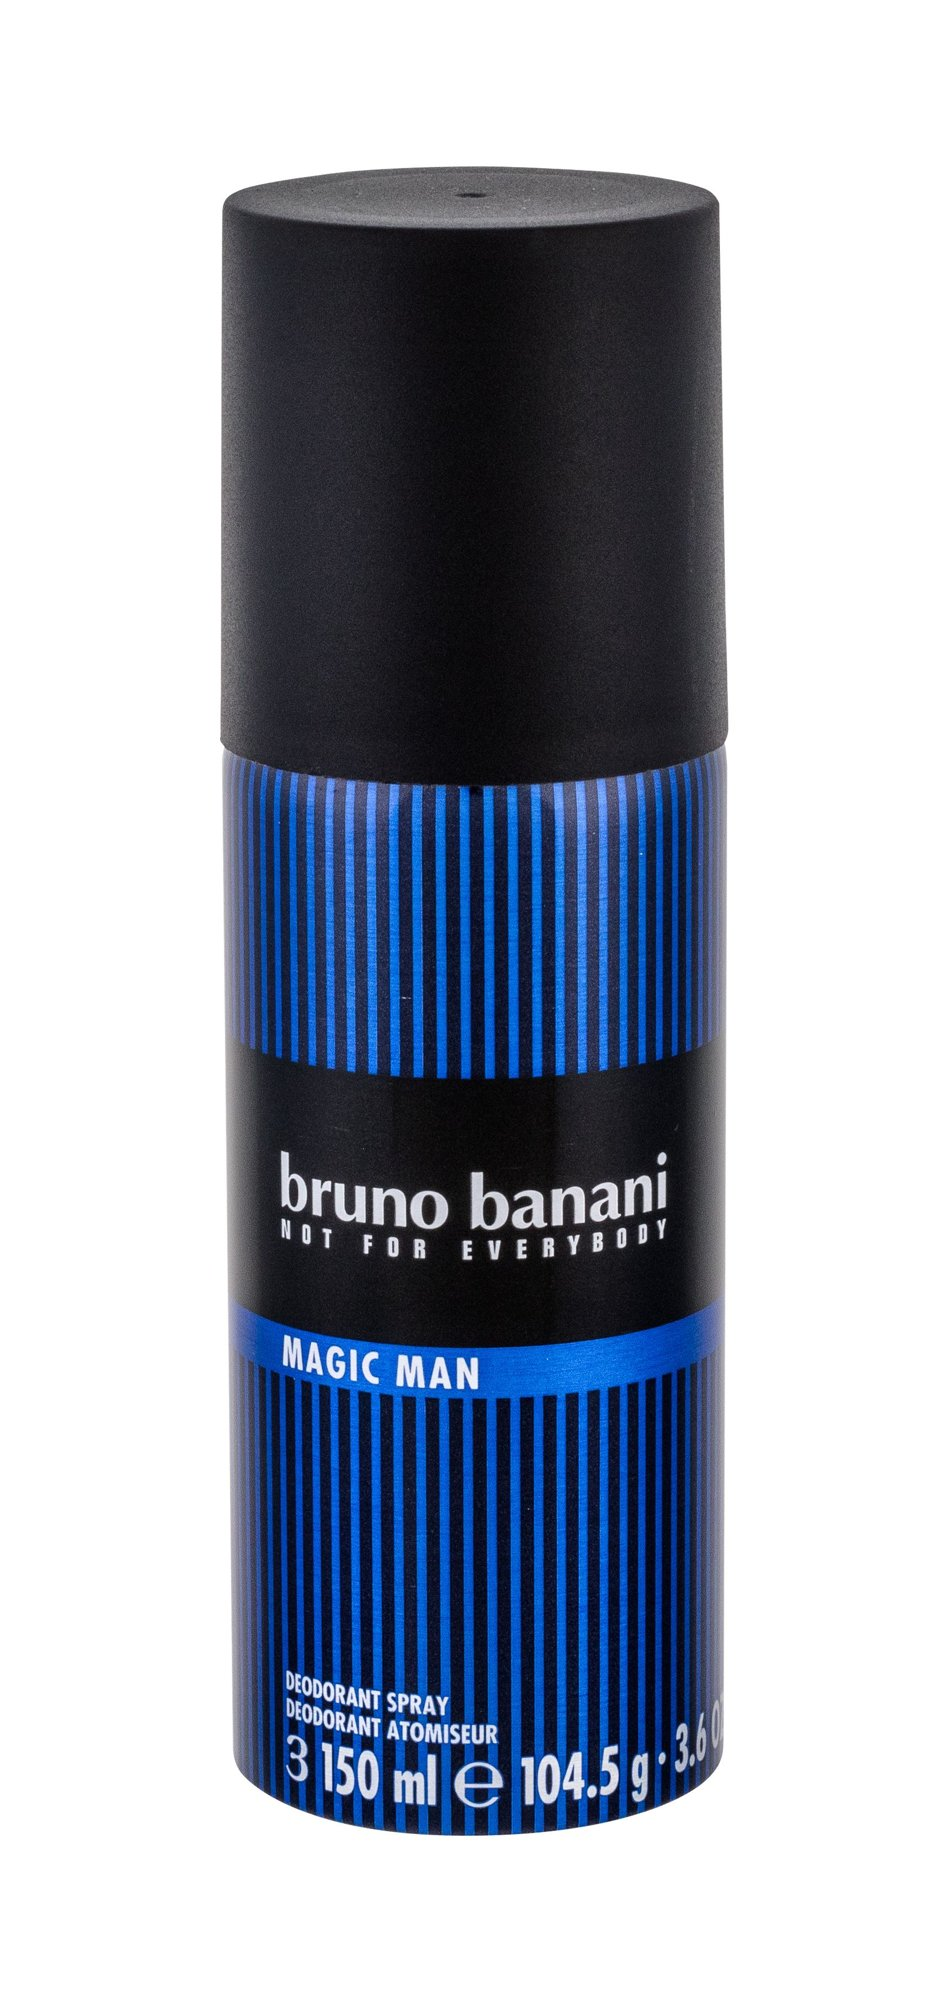 Bruno Banani Magic Man  Deodorant, M, 150 ml